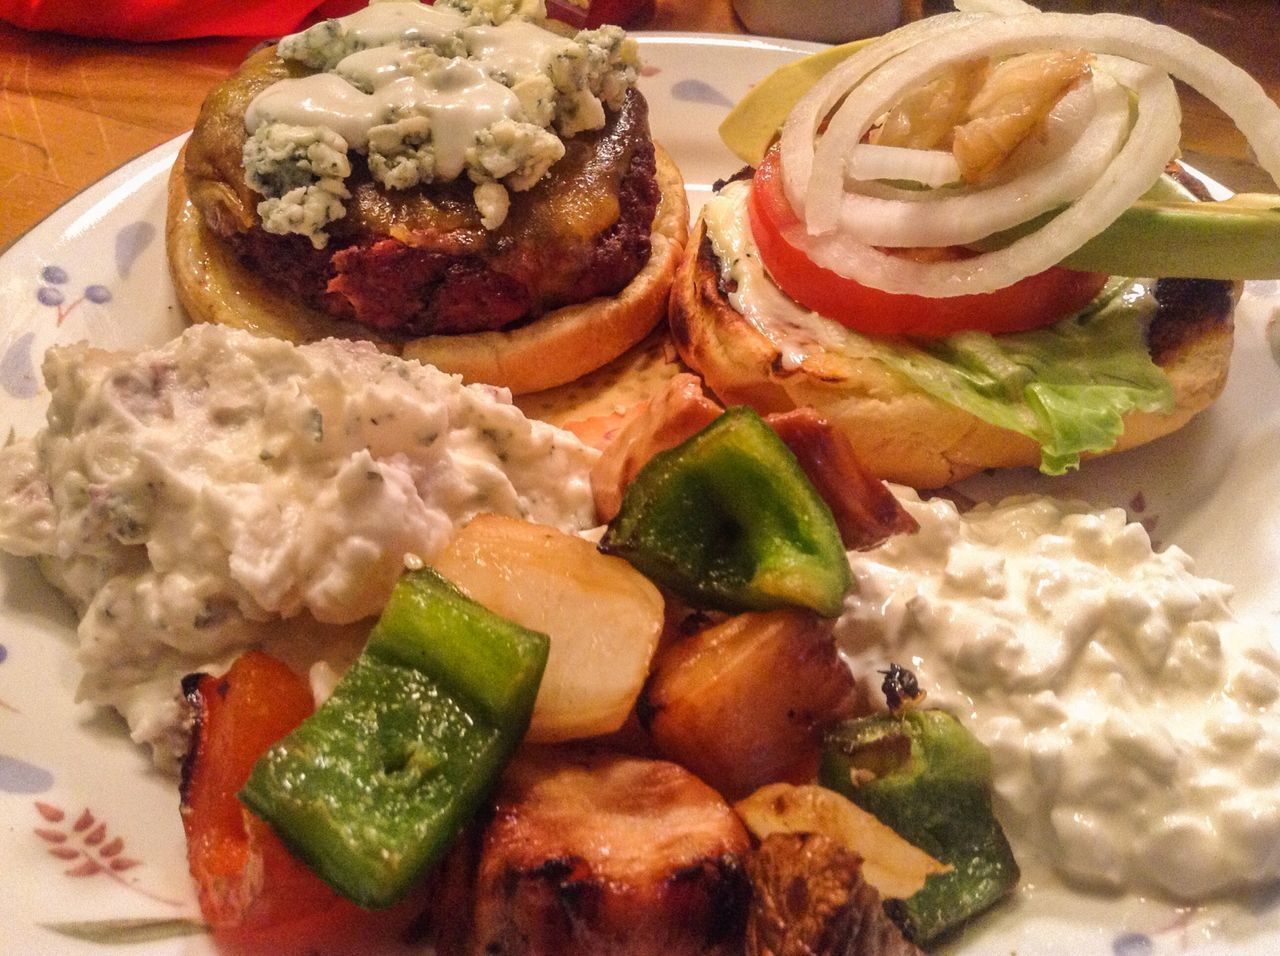 Danish Bleu Cheese Avocado Burger, Red Potato Salad, Teriyaki Chicken Kabobs and cottage cheese BBQ Food Food Porn Food Photography